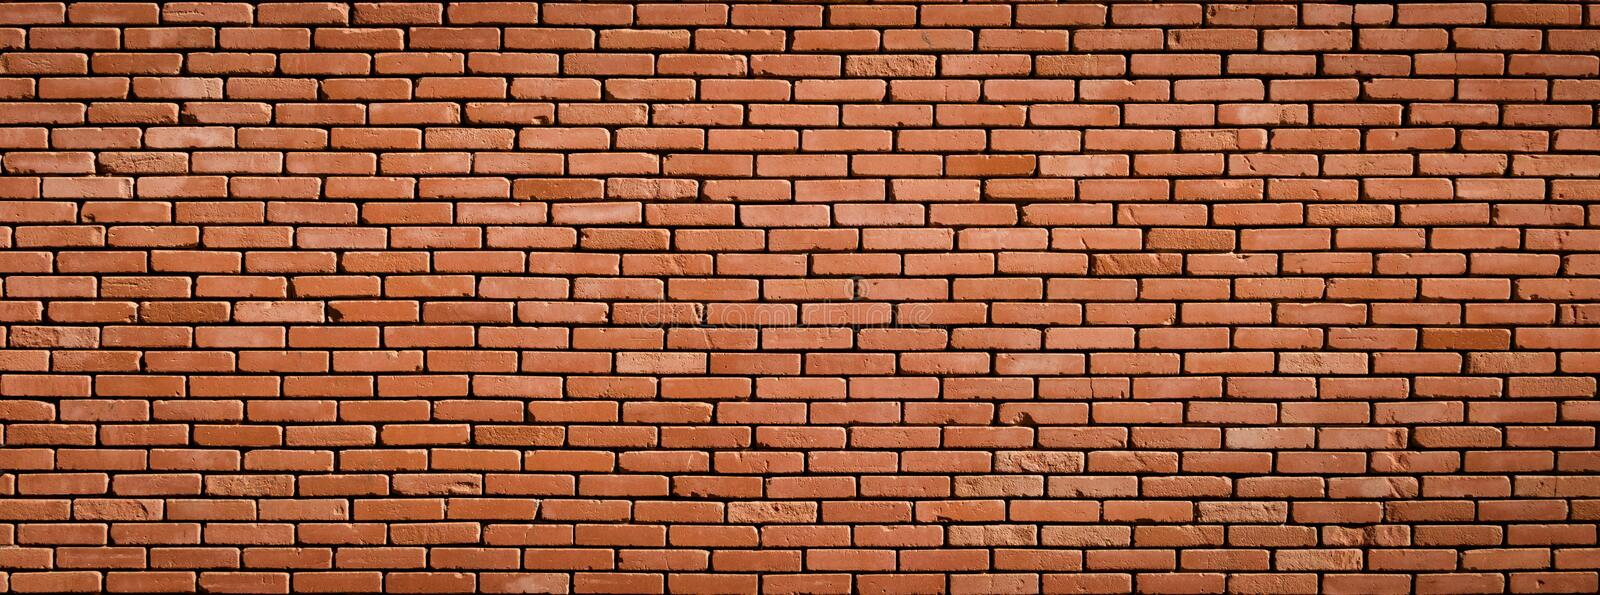 Large Old Red Brick Wall Background Texture stock image